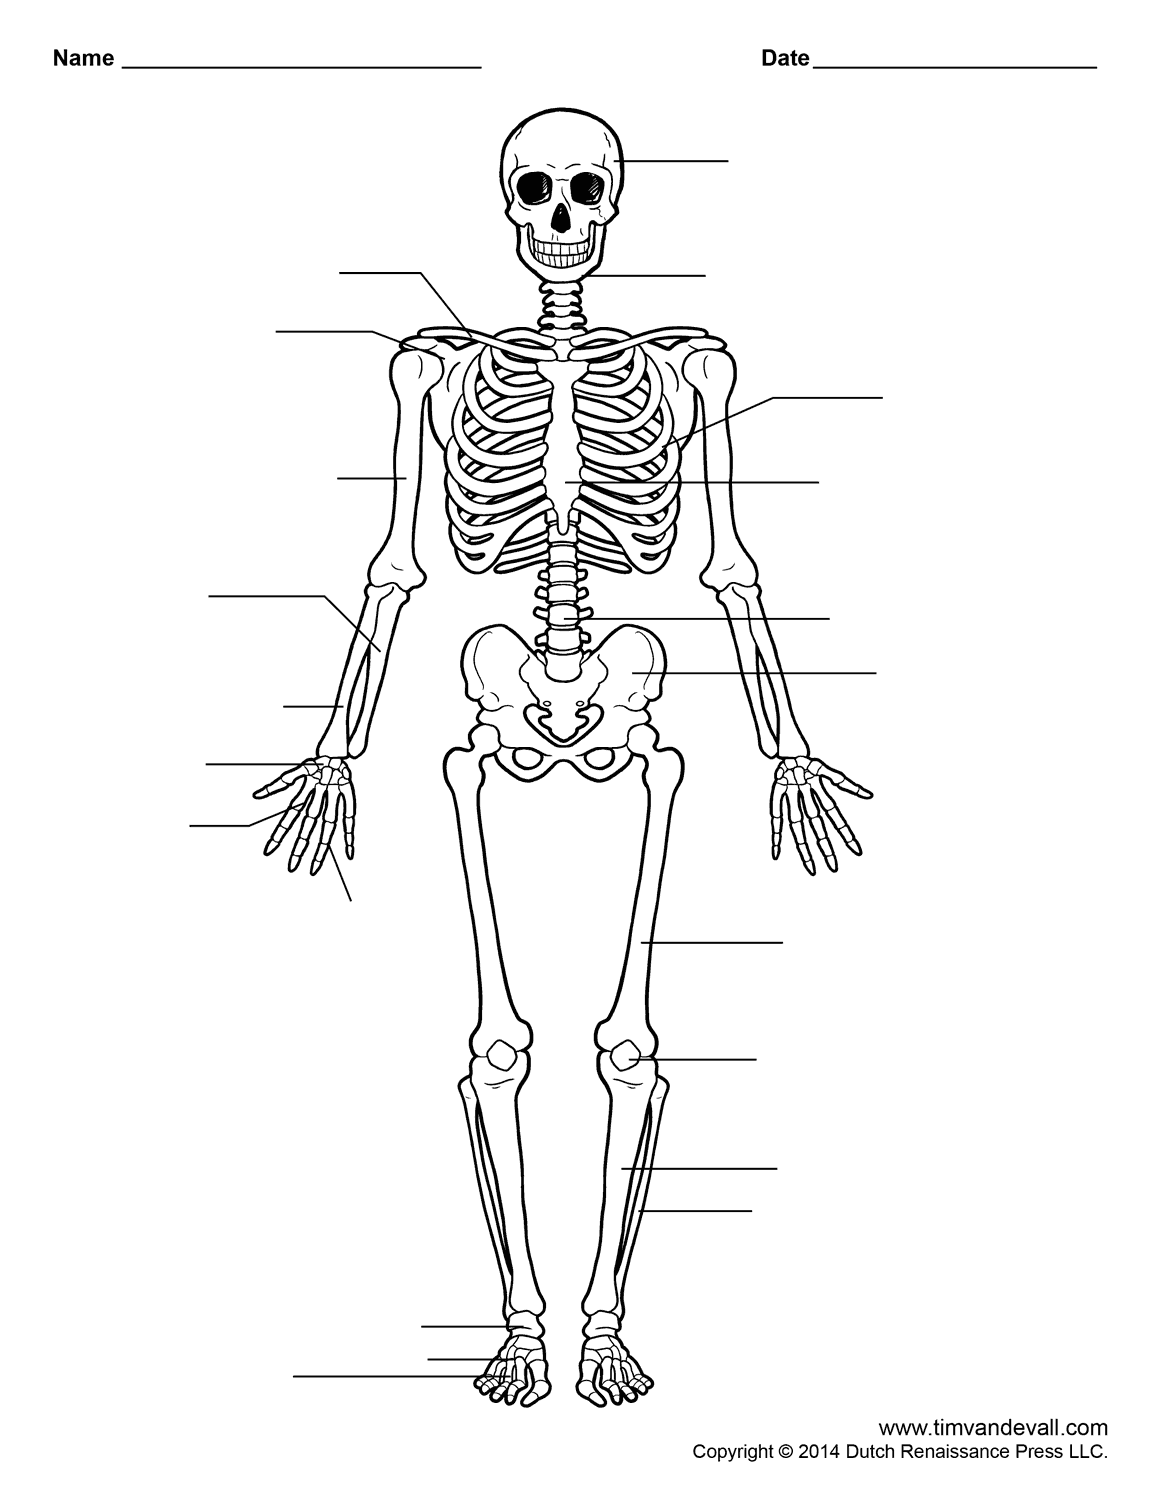 Free Printable Human Skeleton Worksheet for Students and ...